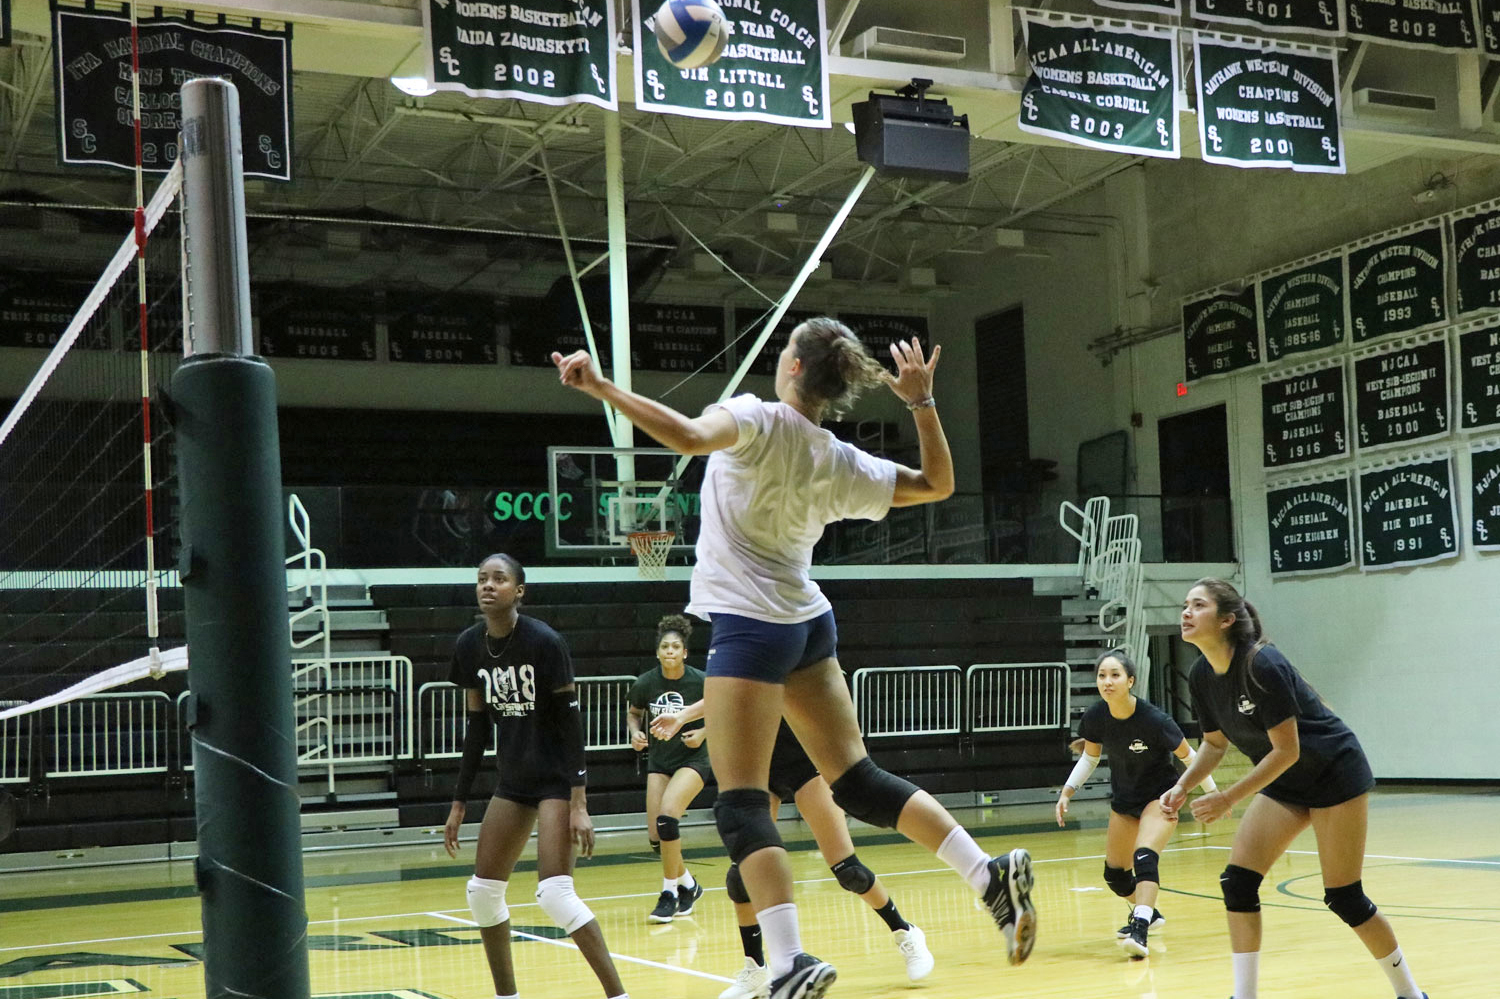 The Lady Saints will play their first home game on Wednesday at 6:30 p.m. The enter the match with Dodge City Community College with a record of 9-2.